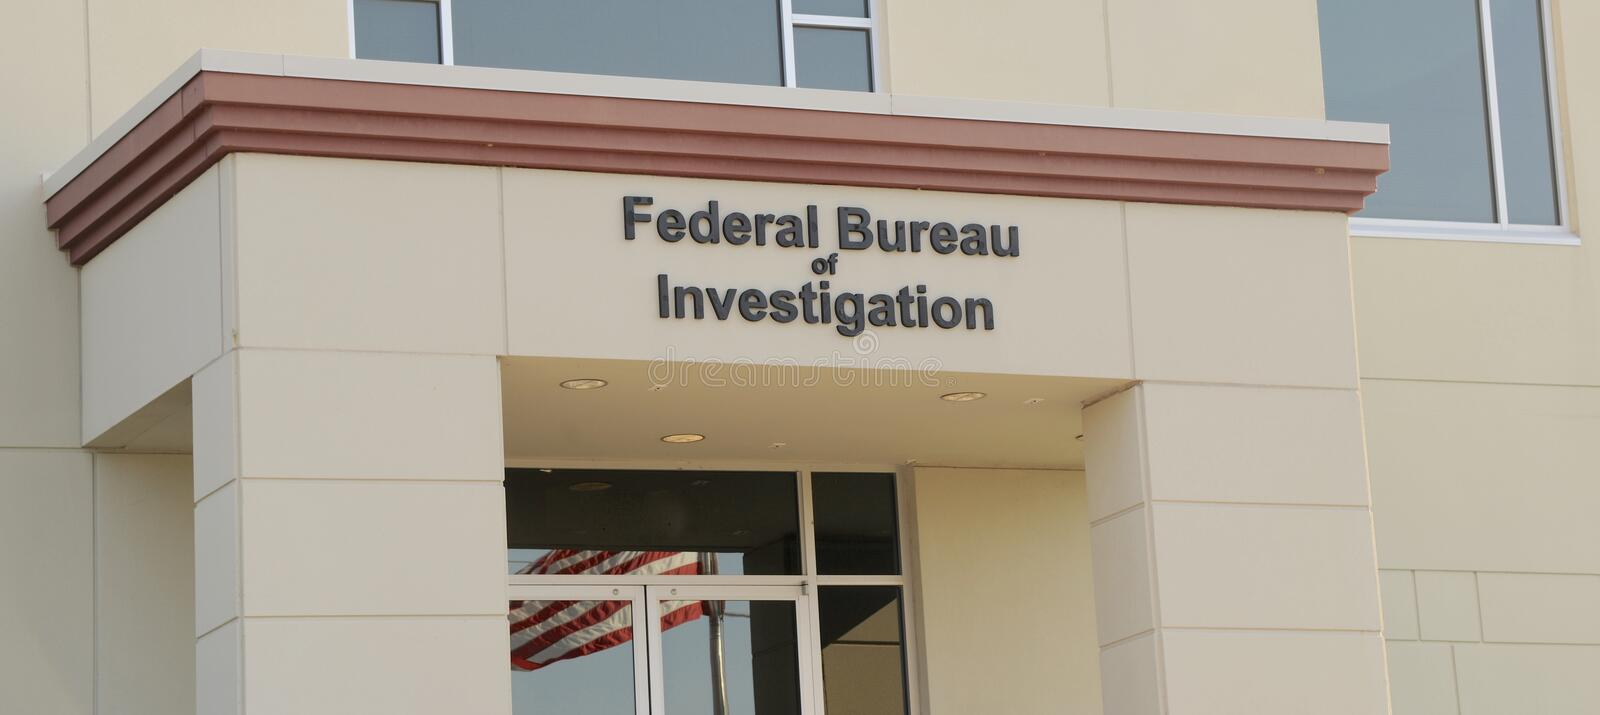 Federal Bureau of Investigation. FBI headquarters building located outside of Nashville, TN royalty free stock photos